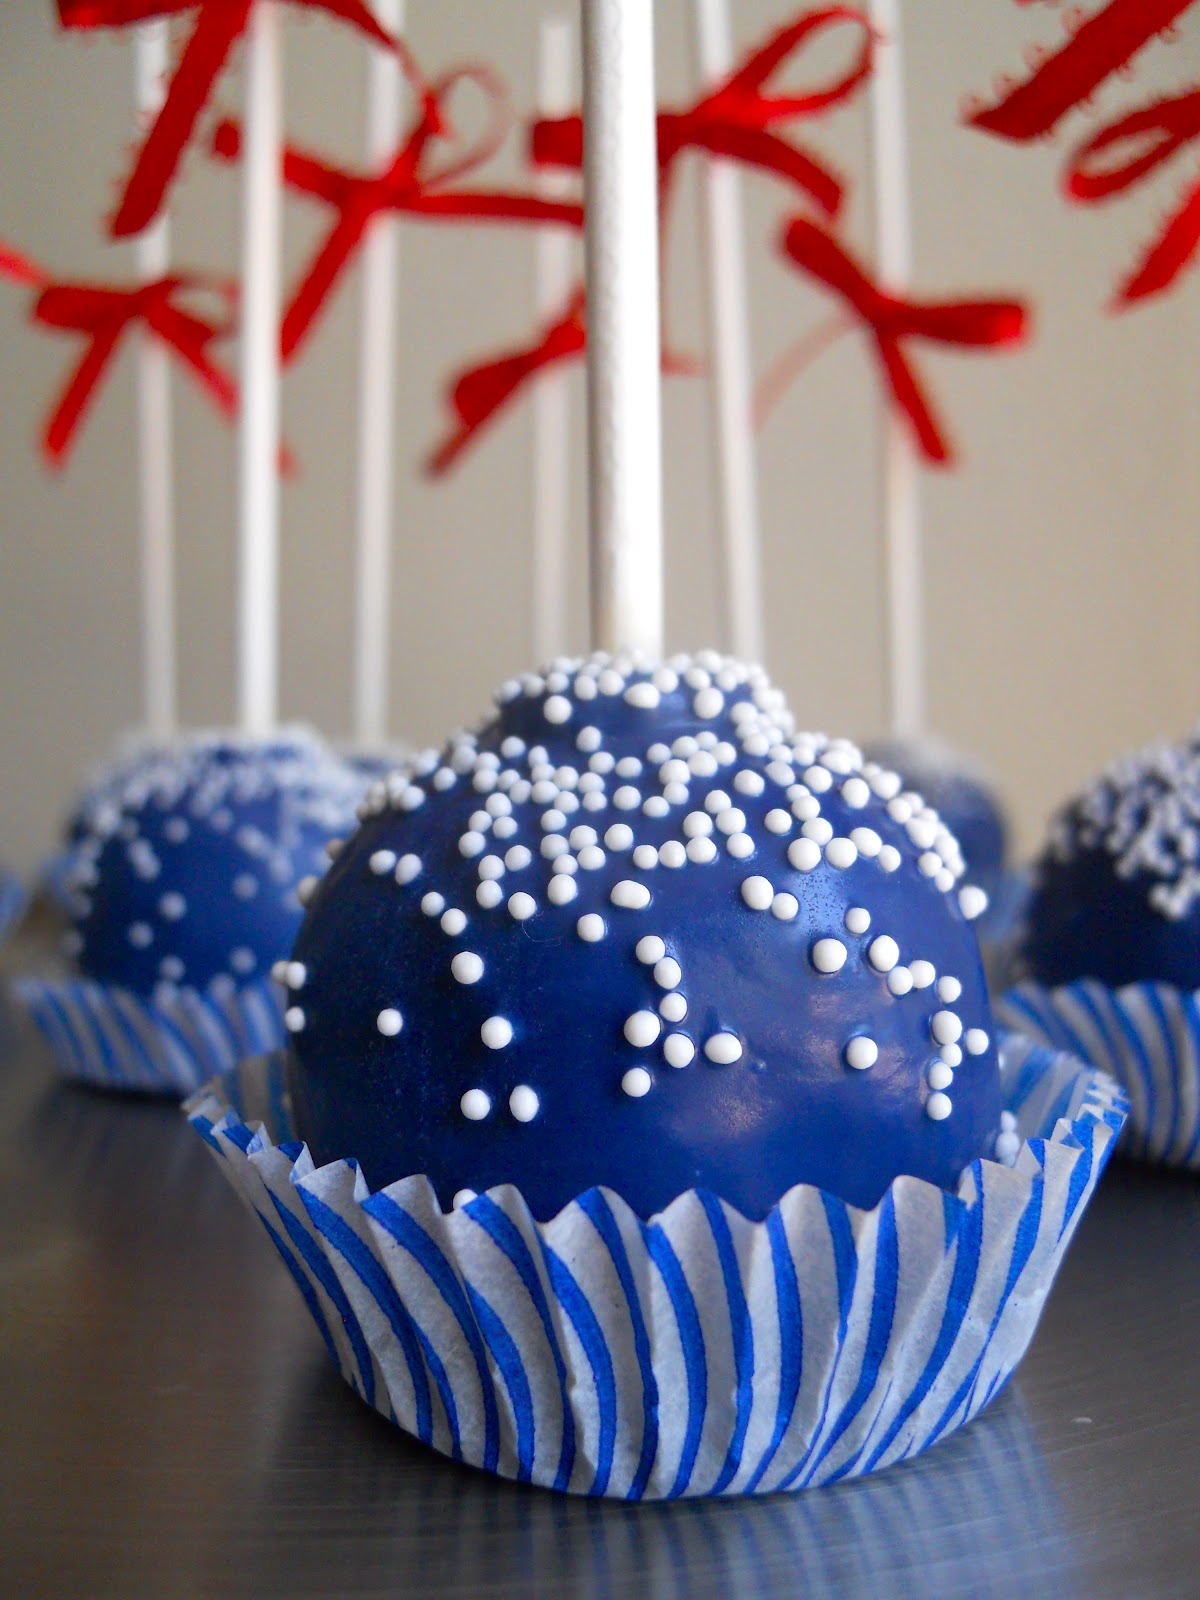 chocolate-toppers-for-cupcakes